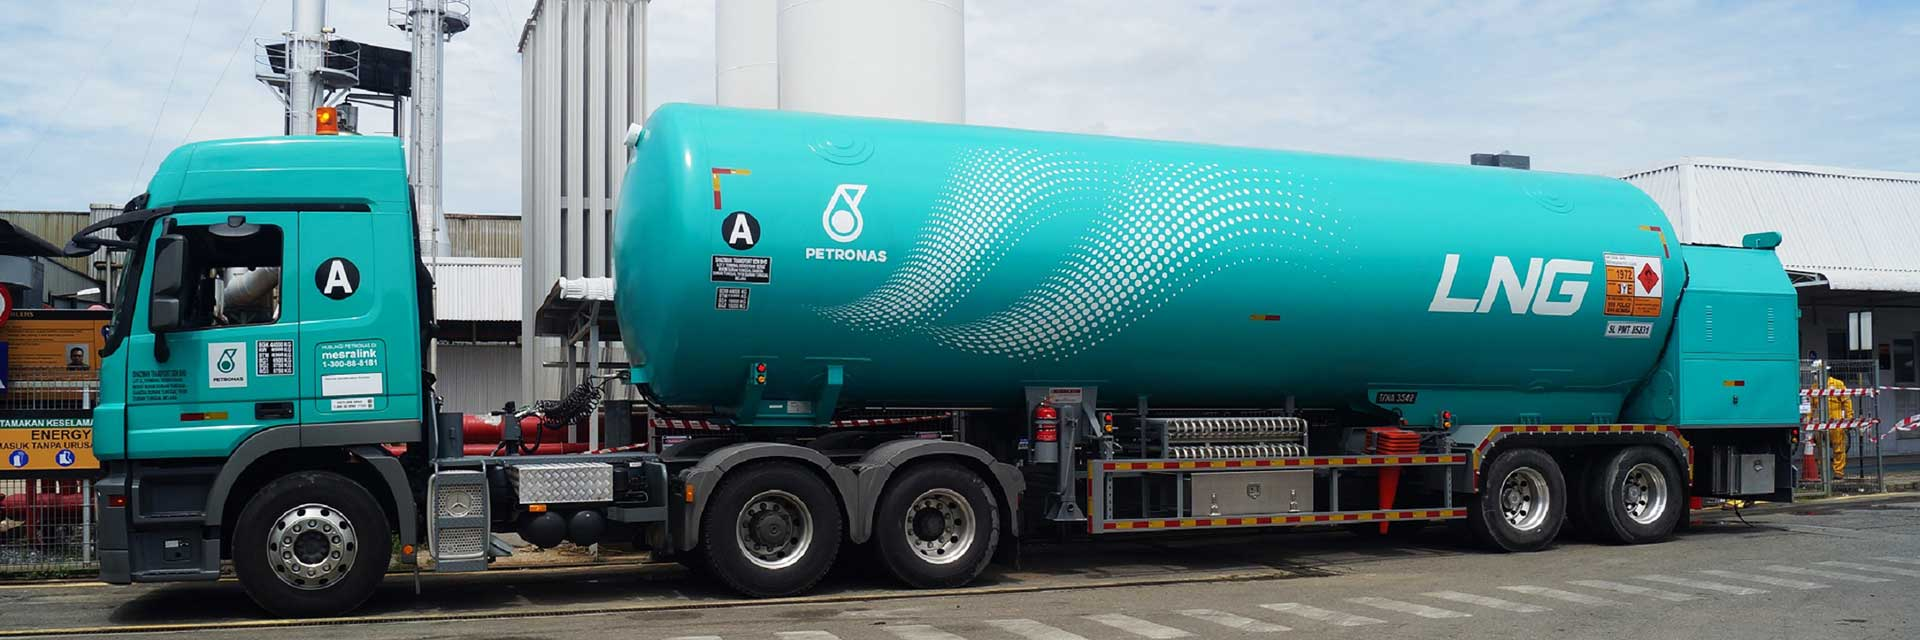 PETRONAS Increases Accessibility To Cleaner Energy With The Launch Of Its Virtual Pipeline System